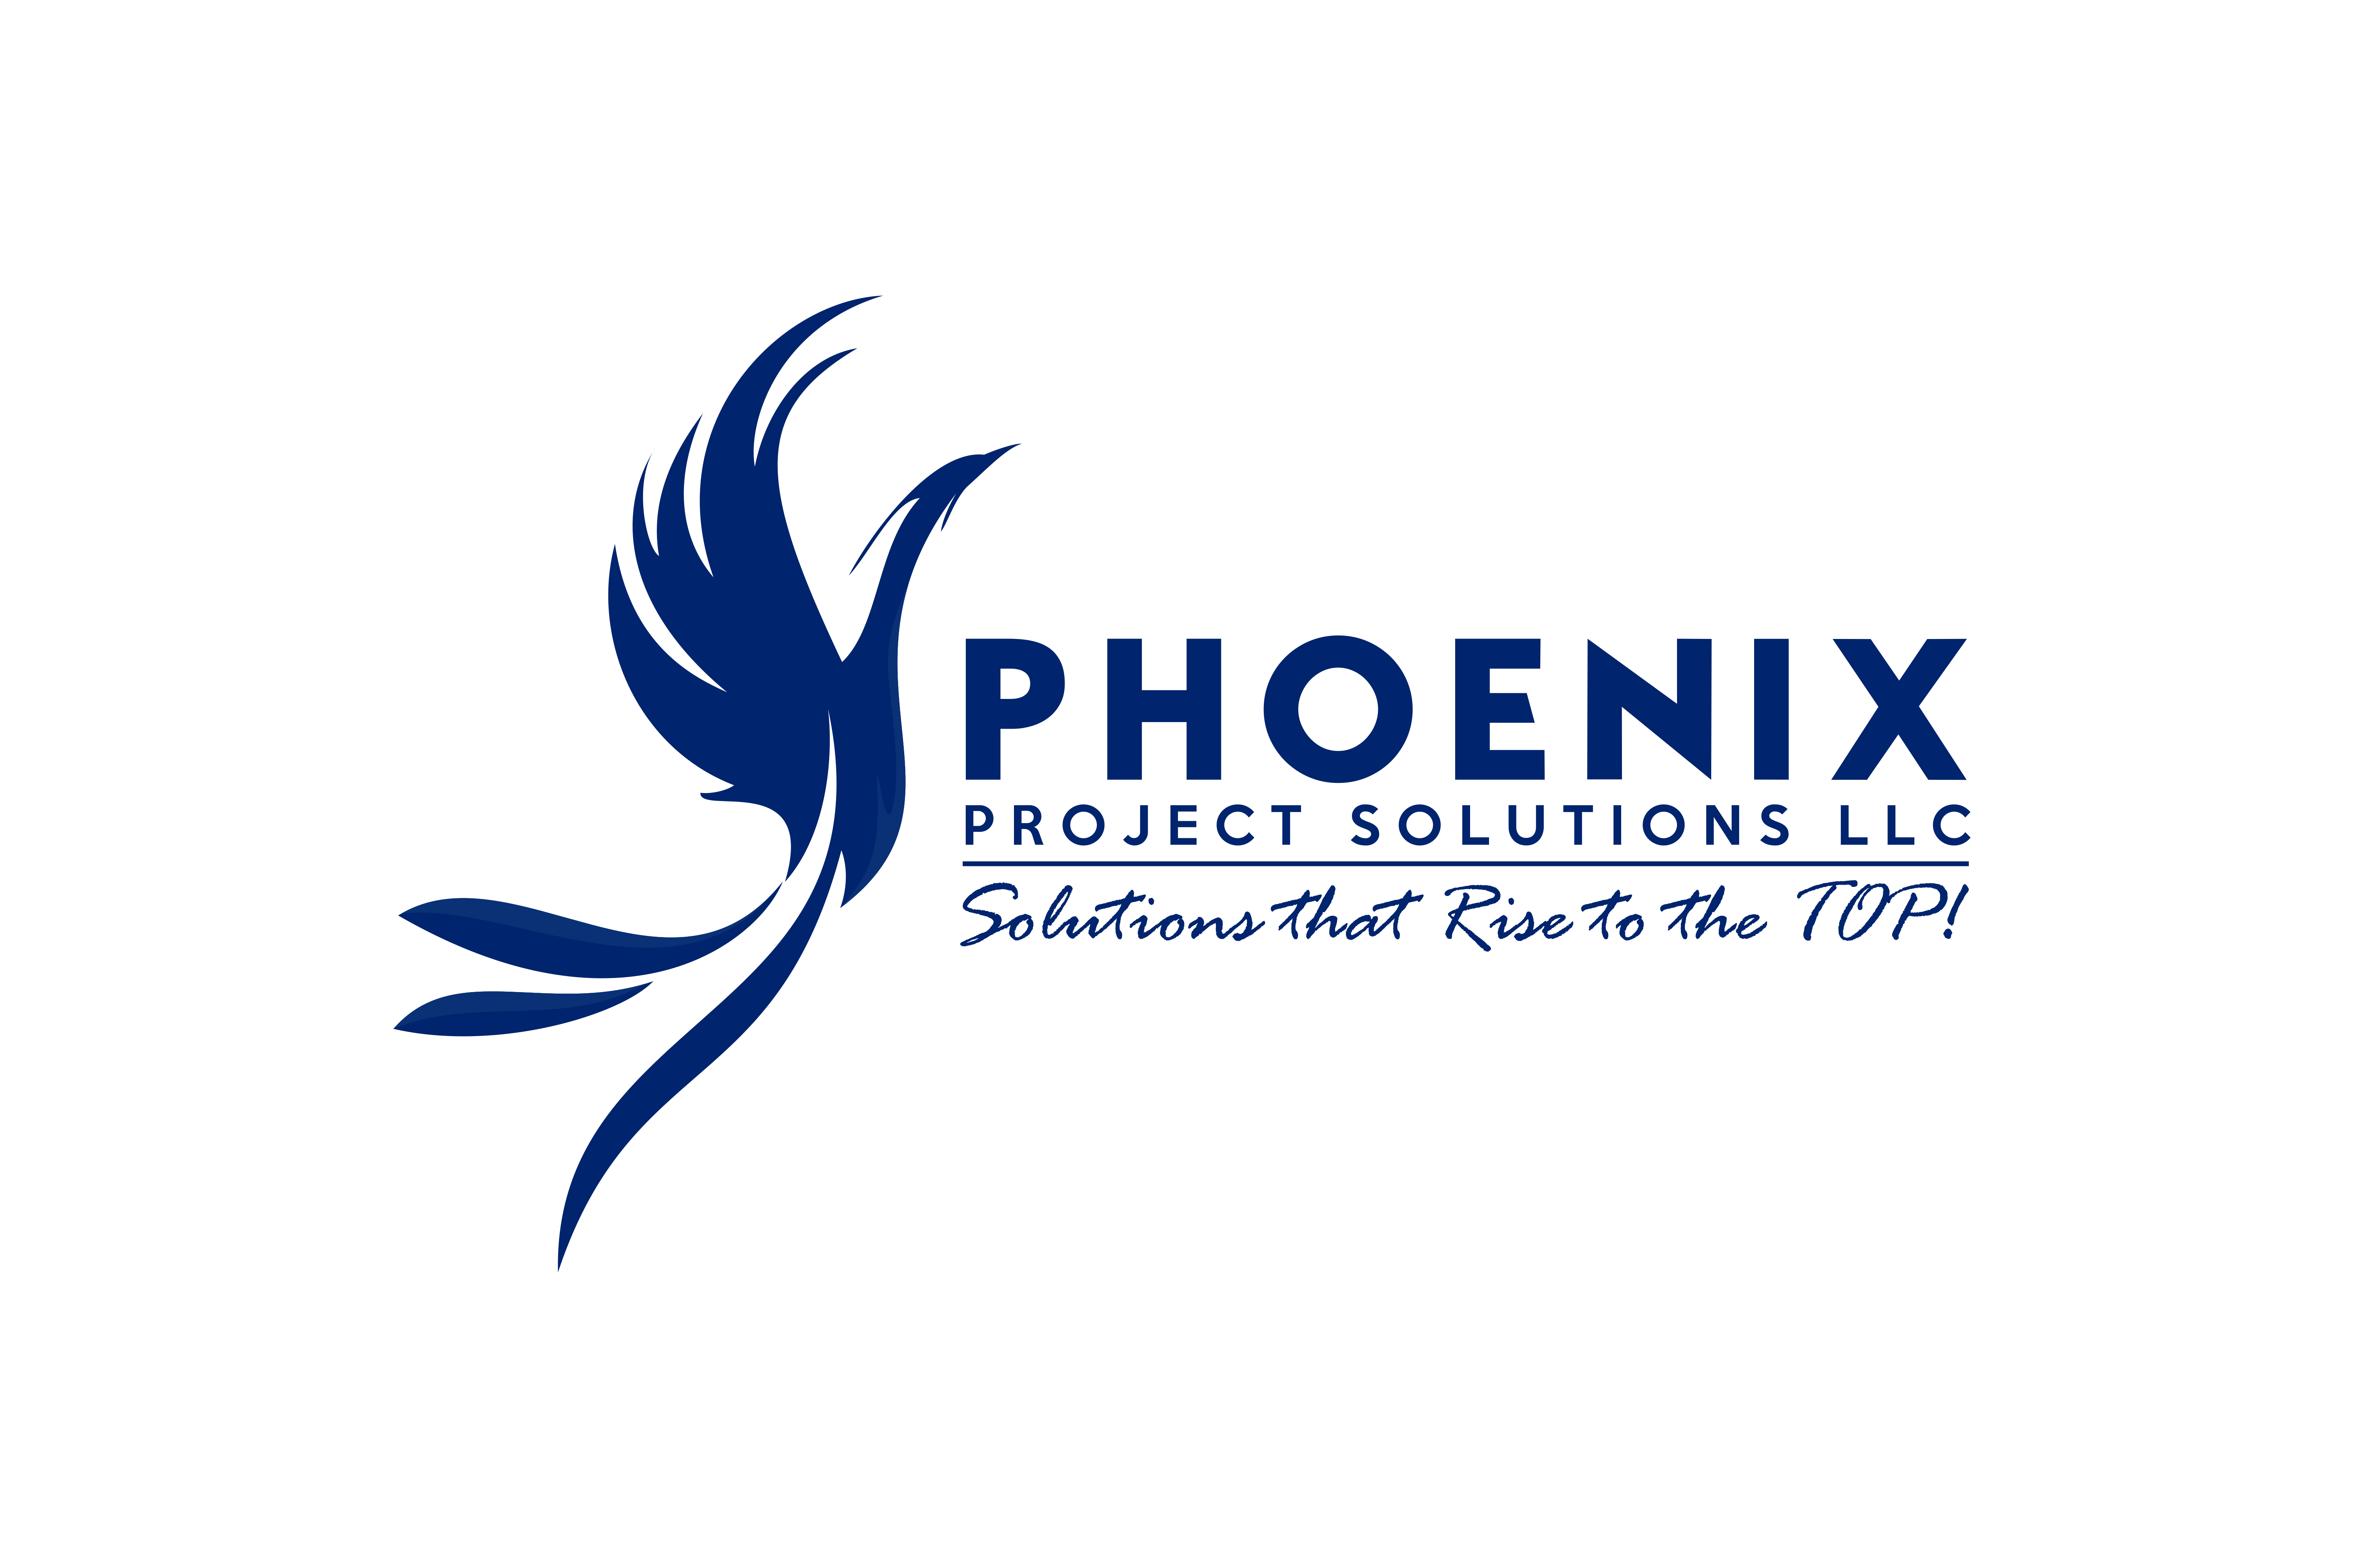 Create a unique design that symbolizes a rebirth with a phoenix rising from ashes